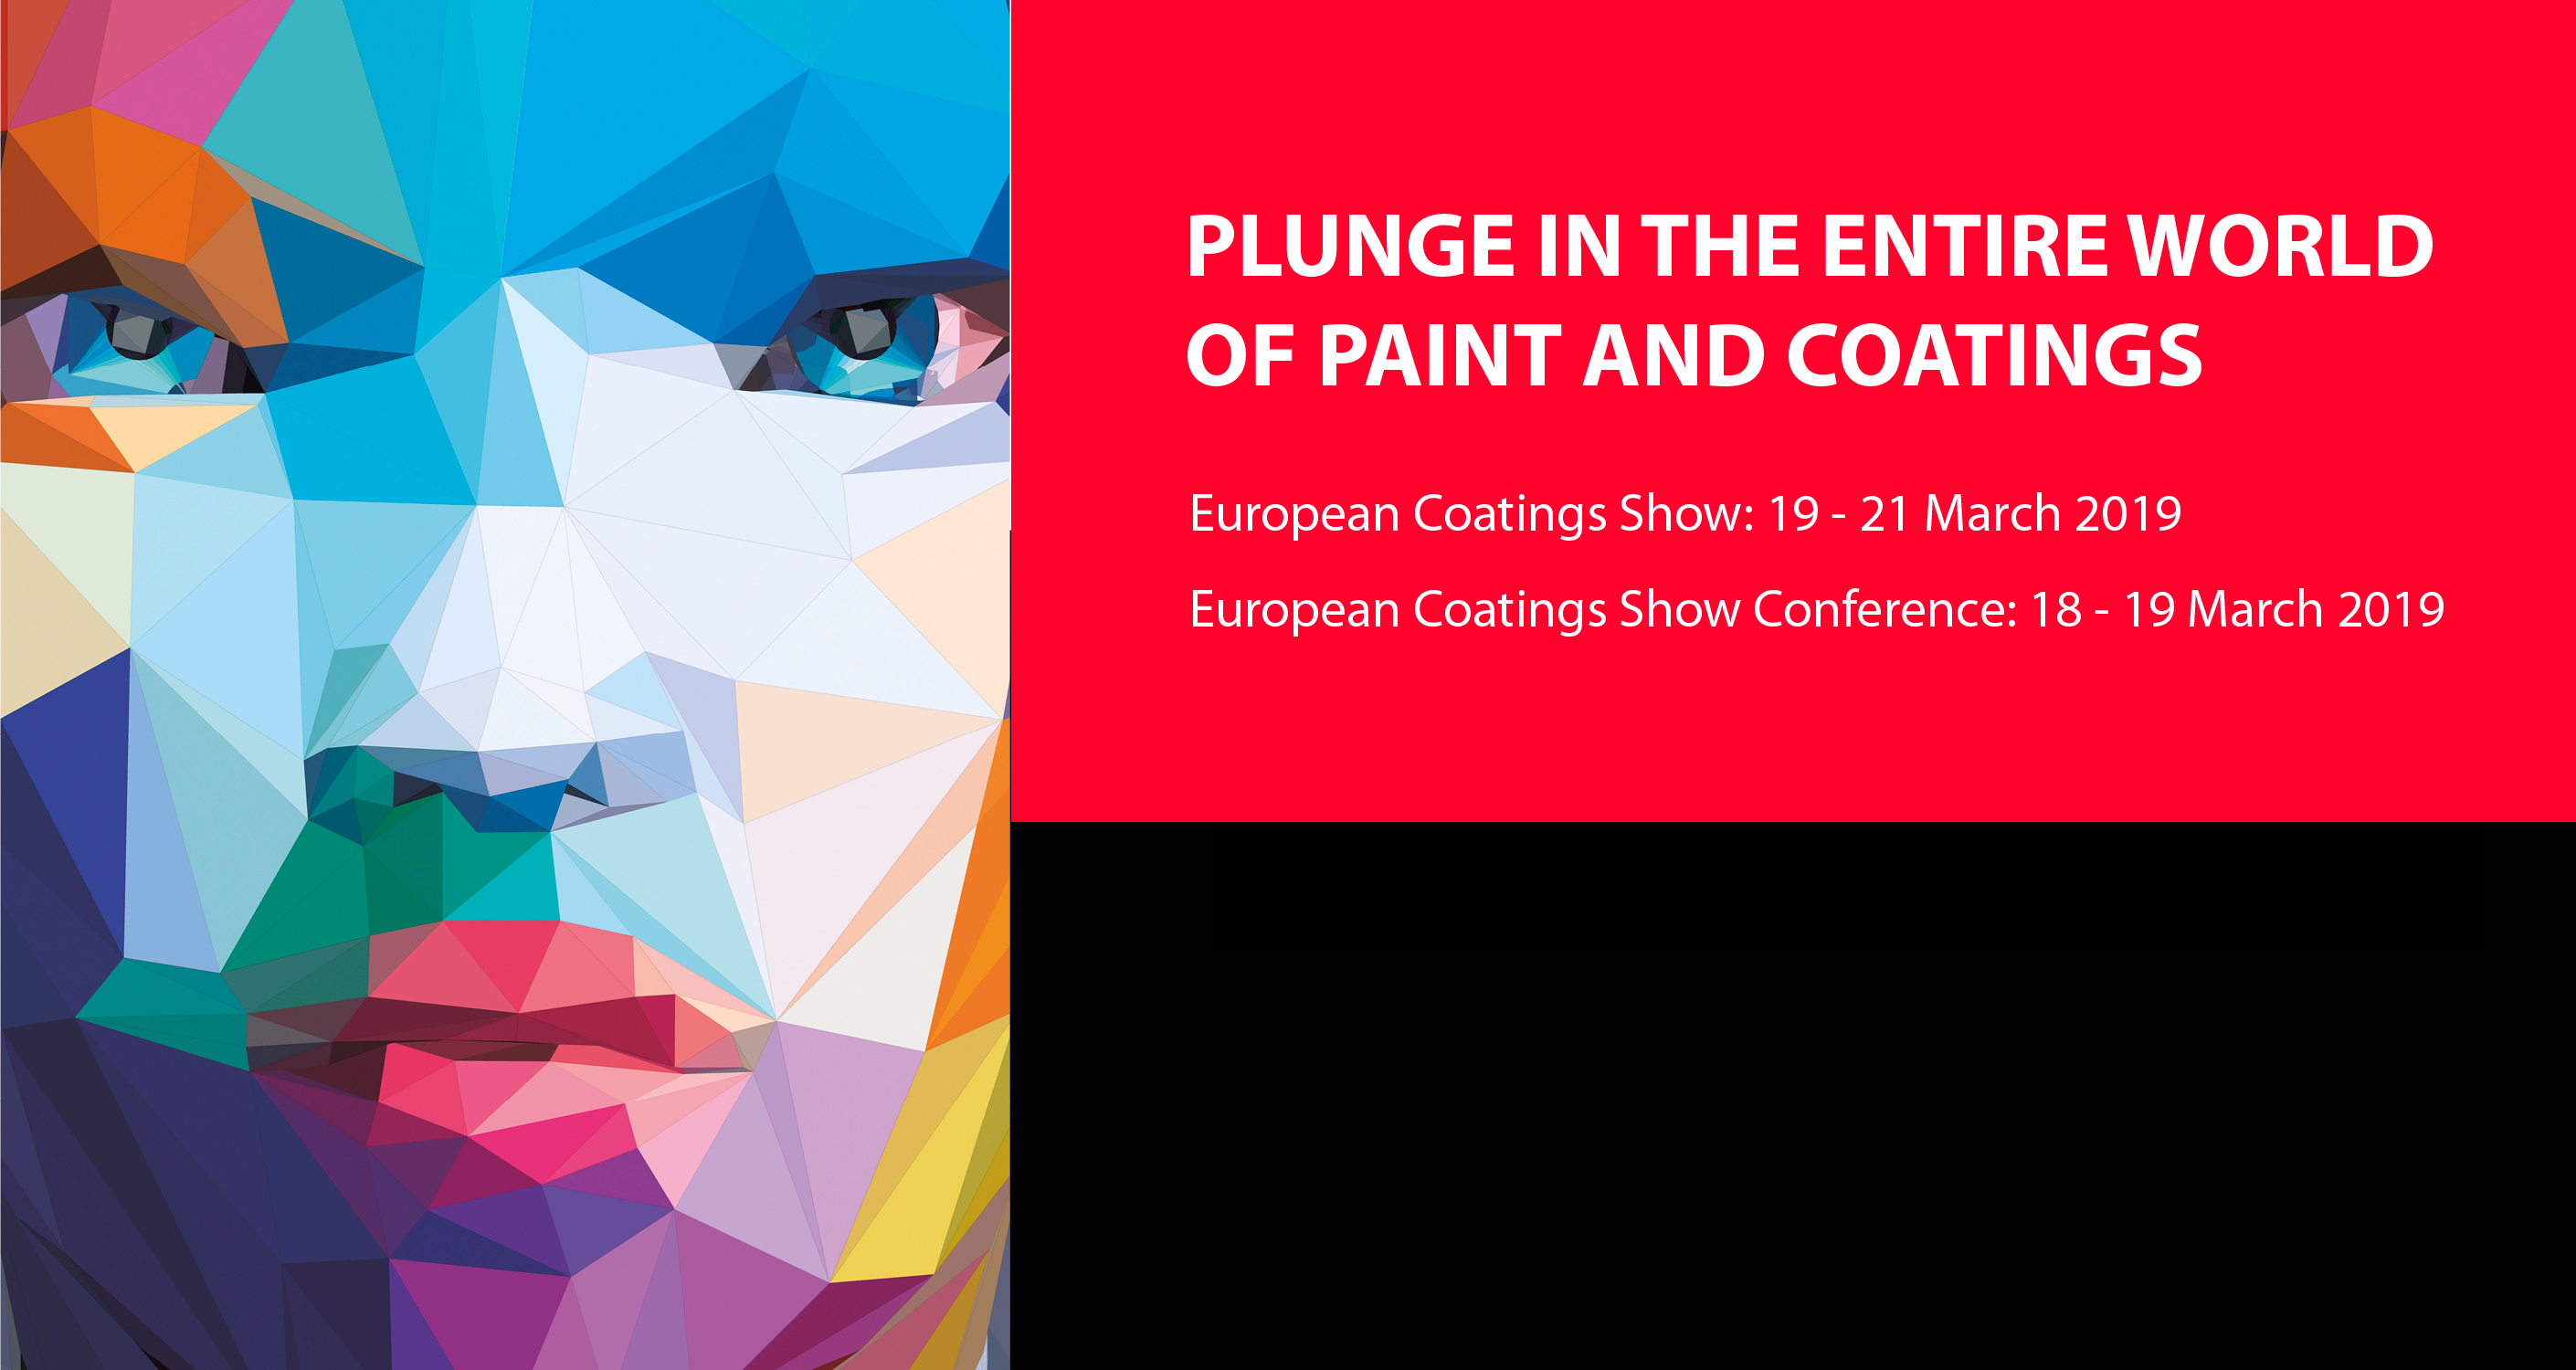 European Coatings Show 2019 - Discover the entire world of paint and coatings